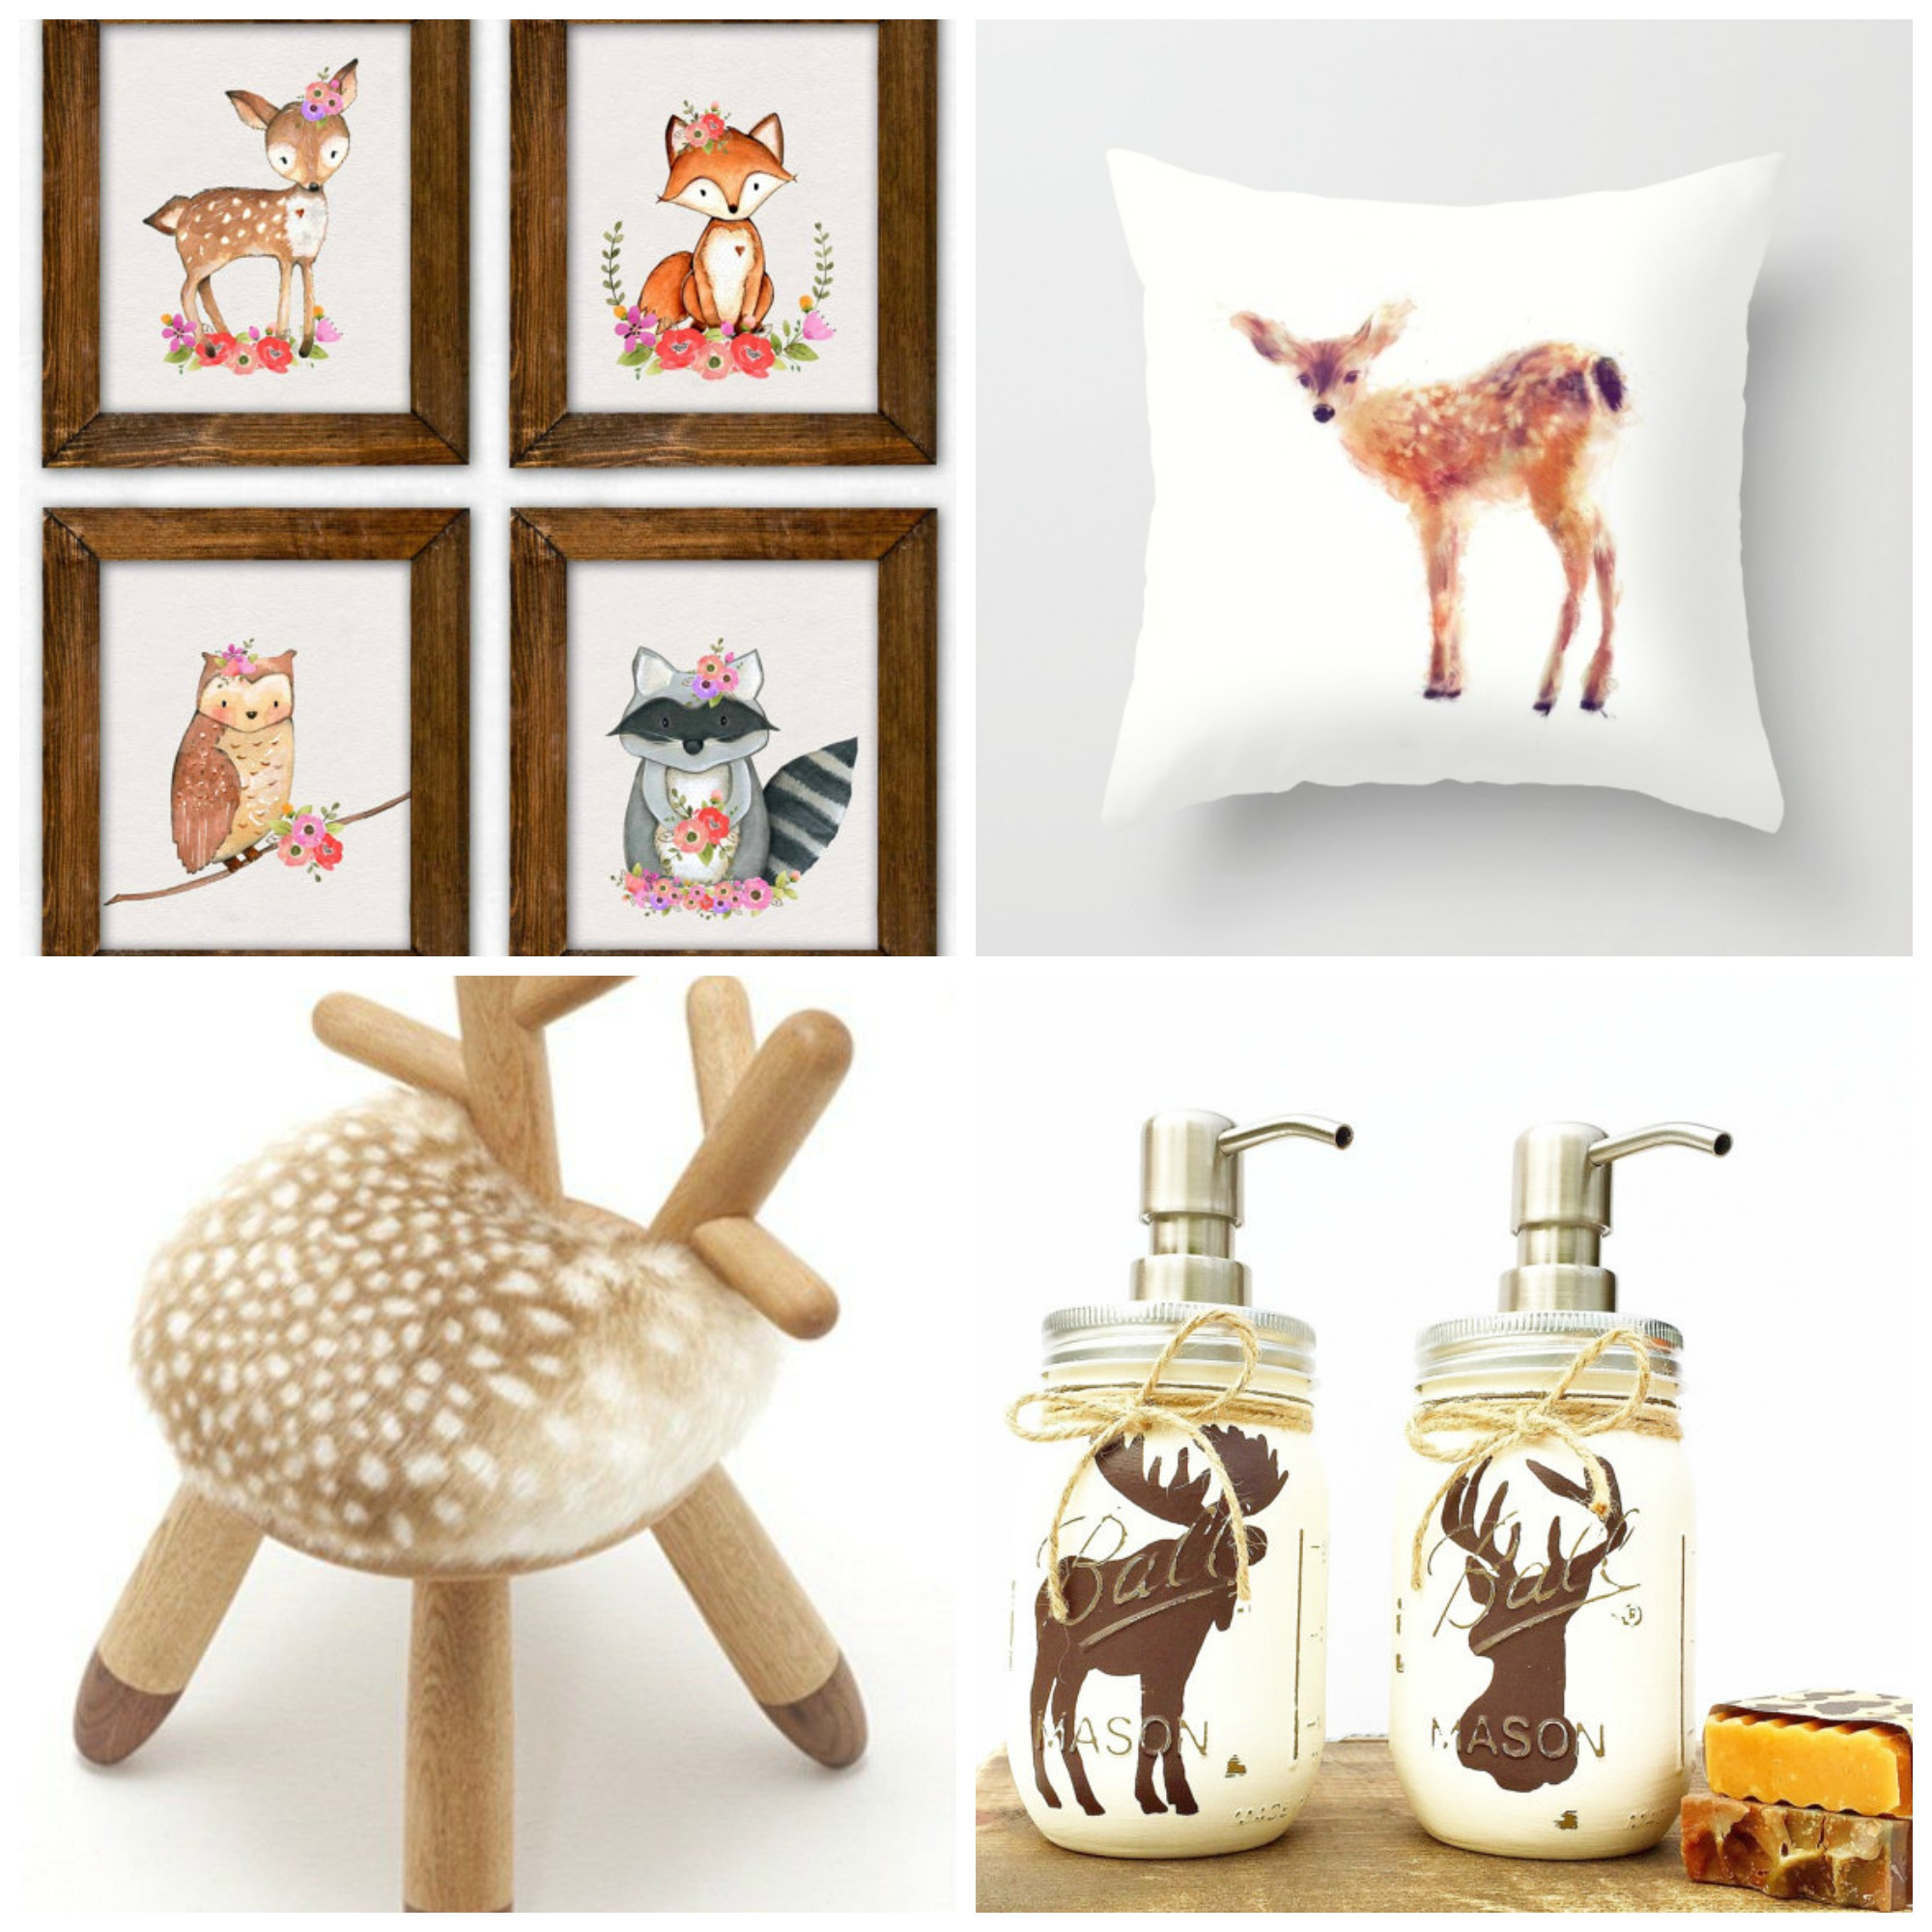 Trend Prediction for 2017 - Deer is the new Fox - Plaster & Disaster